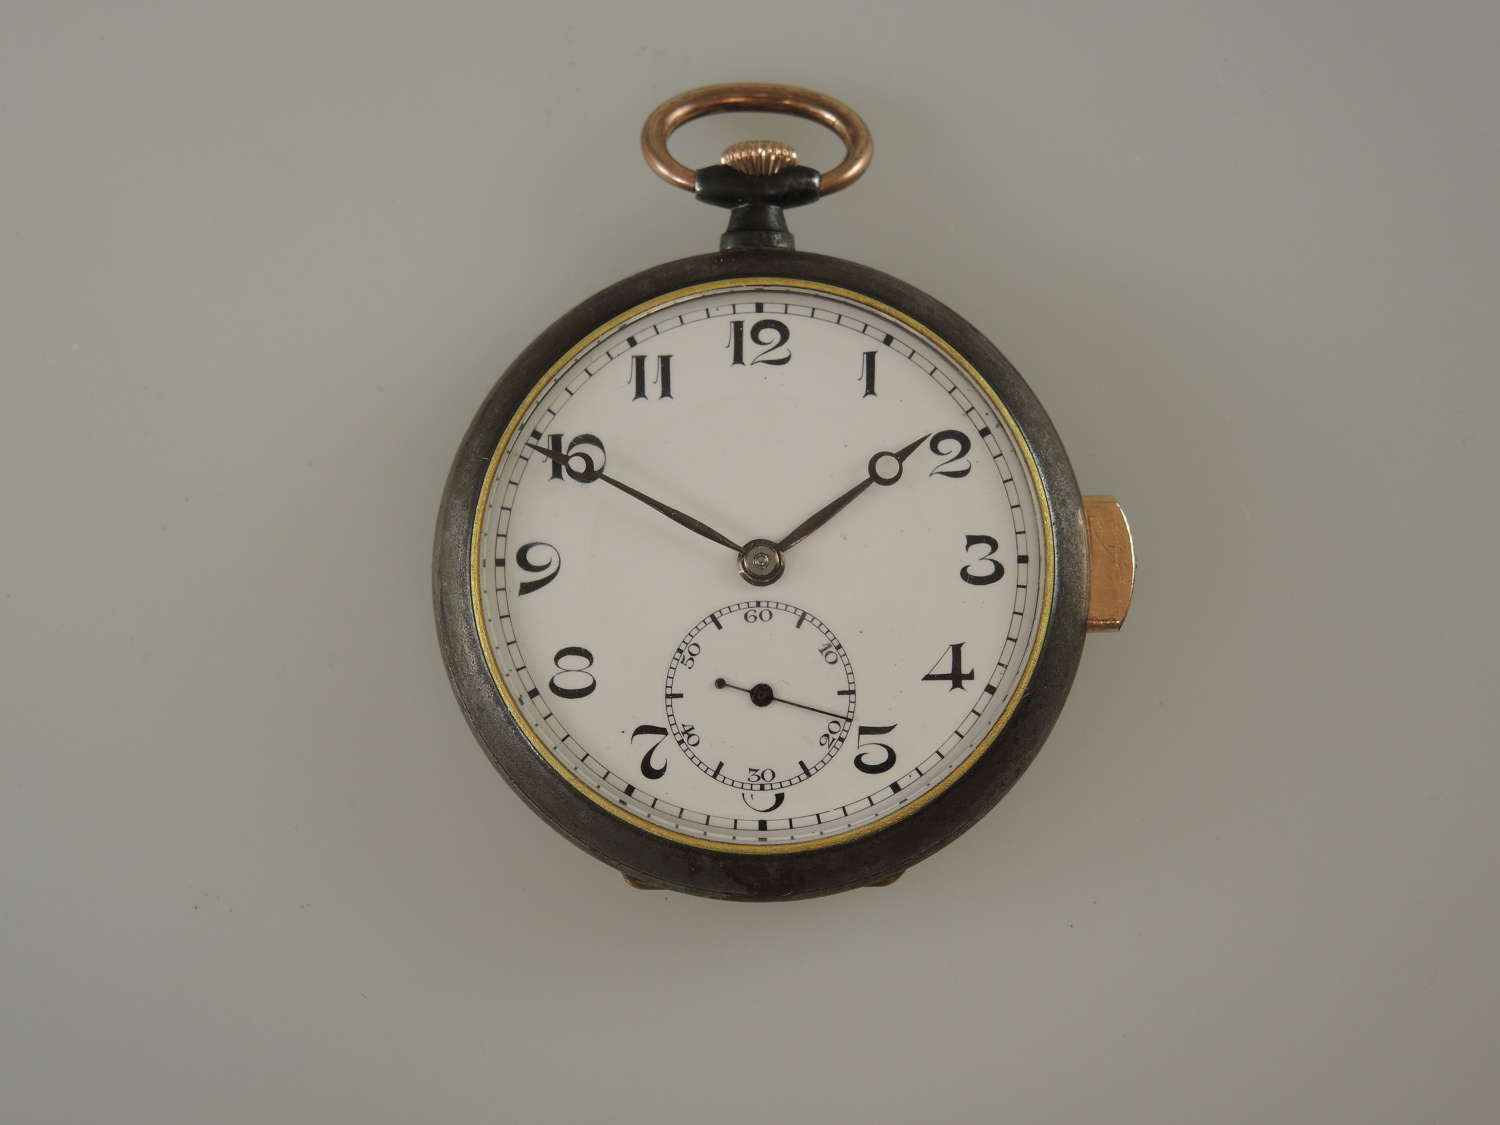 Minute repeater pocket watch c1910